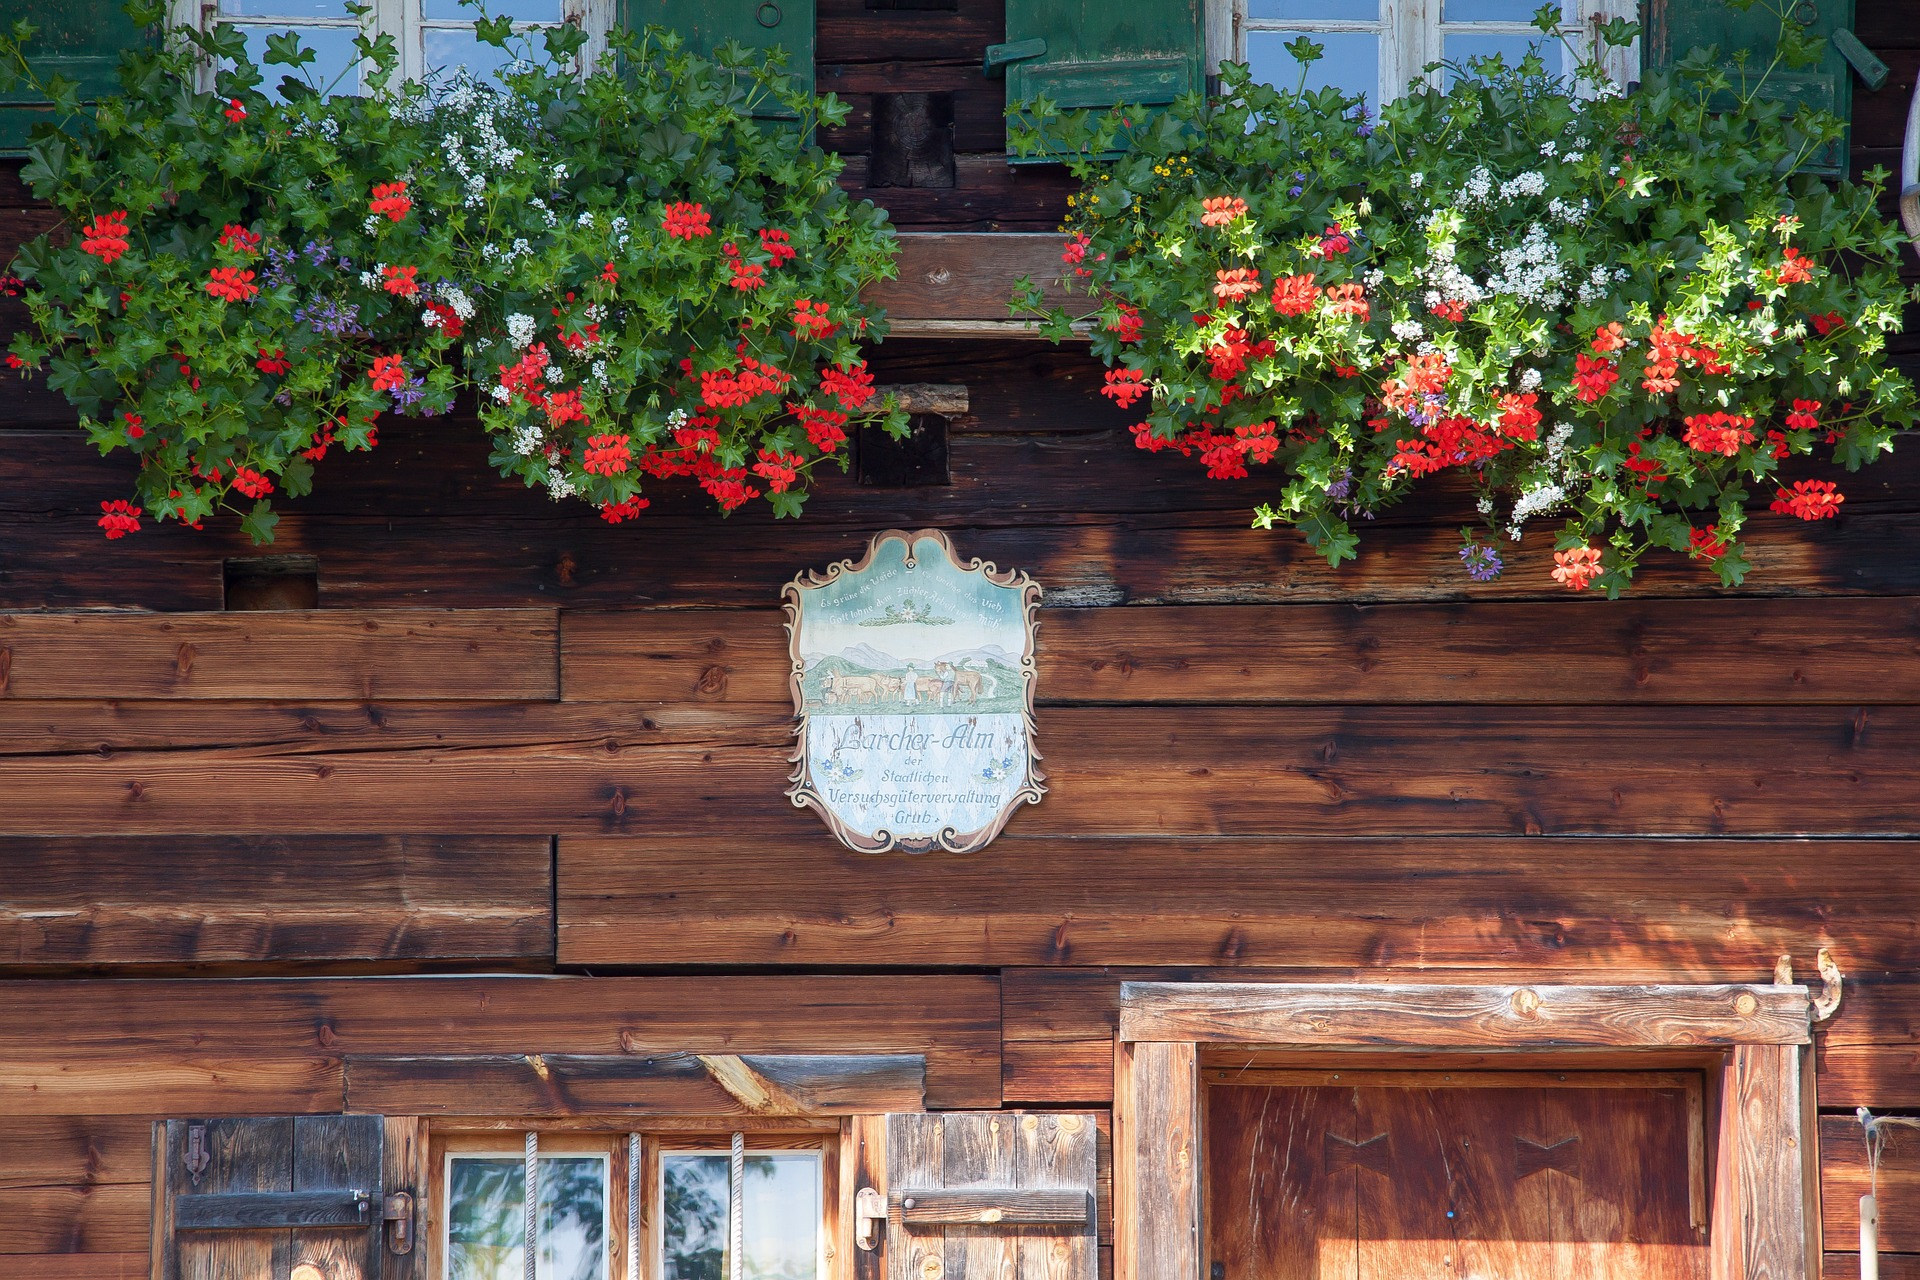 Flowers in the Window, Architecture, Blooming, Construction, Flower, HQ Photo